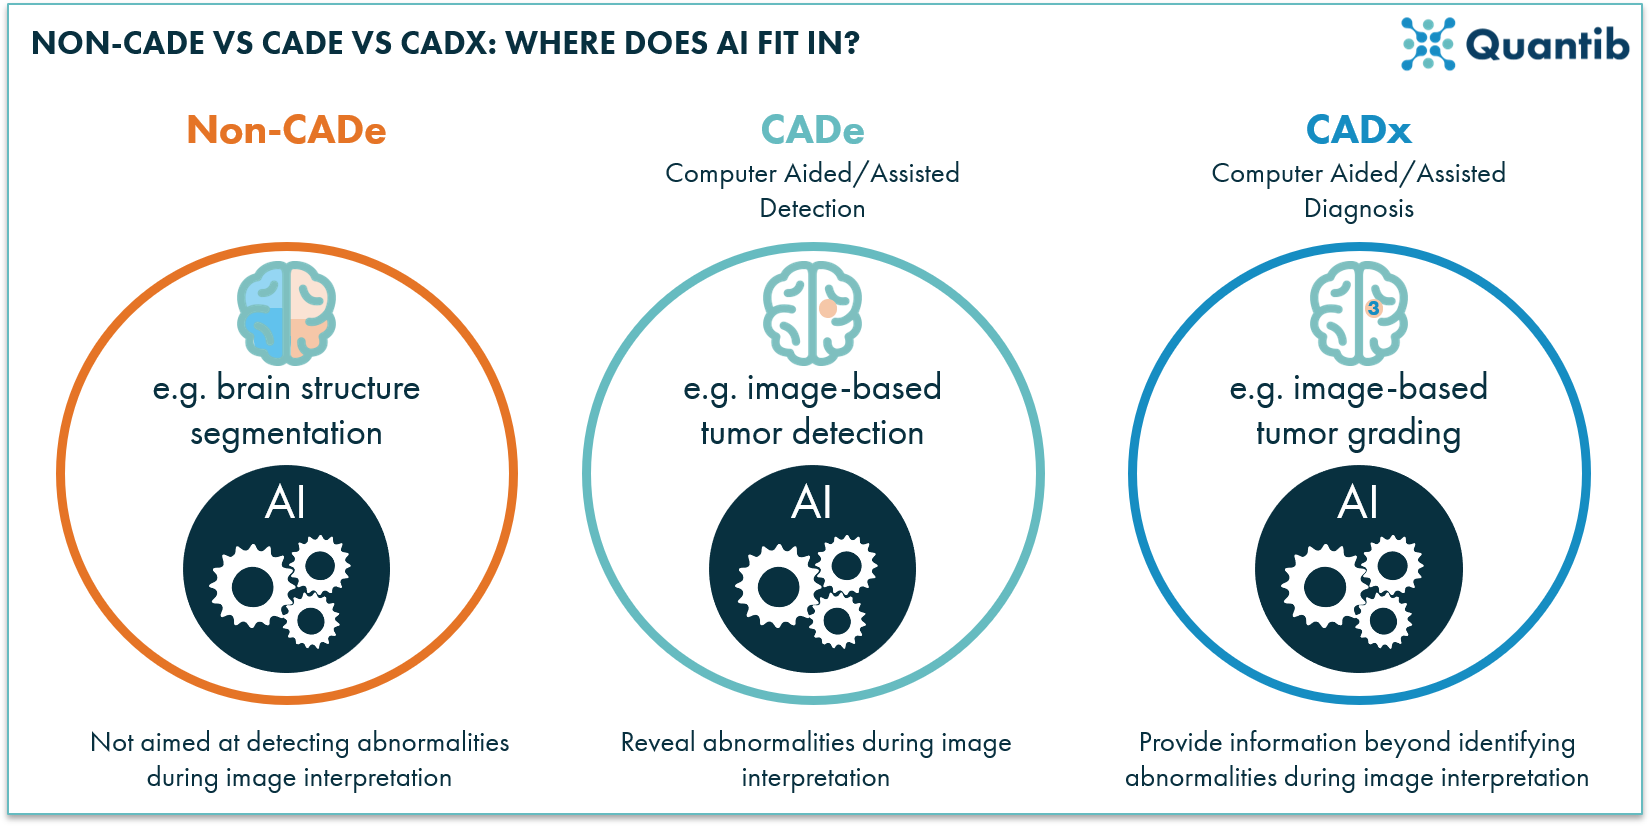 schematic figure explaining AI radiology software divided over the categories non-CADe, CADe, CADx